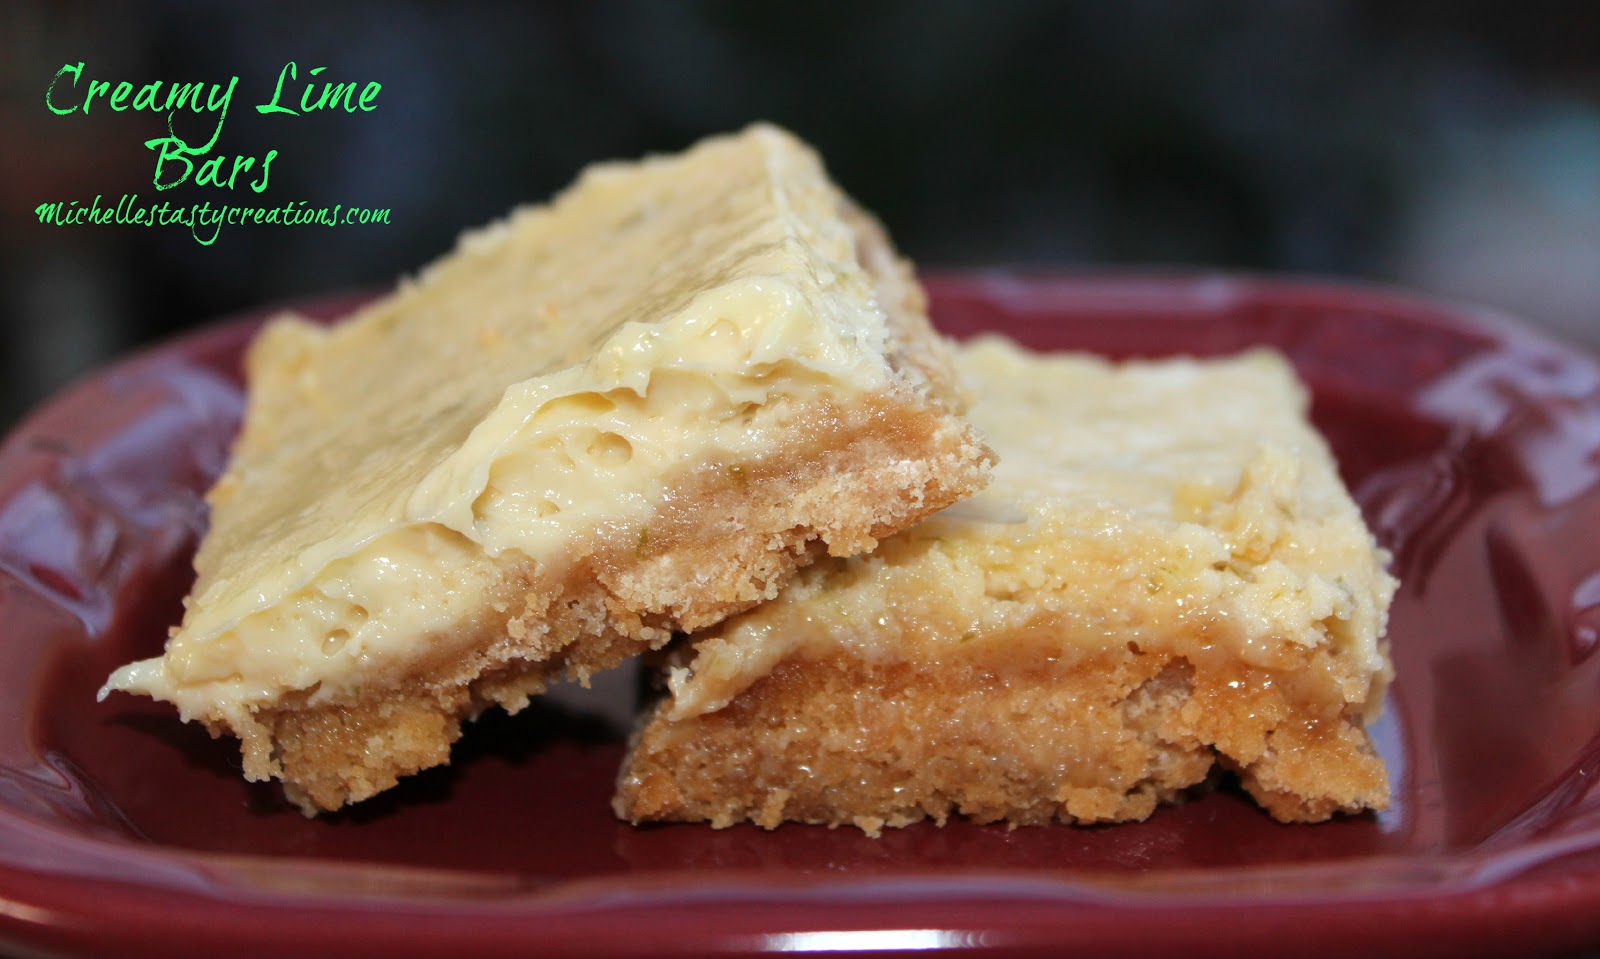 Michelle's Tasty Creations: Creamy Lime Bars